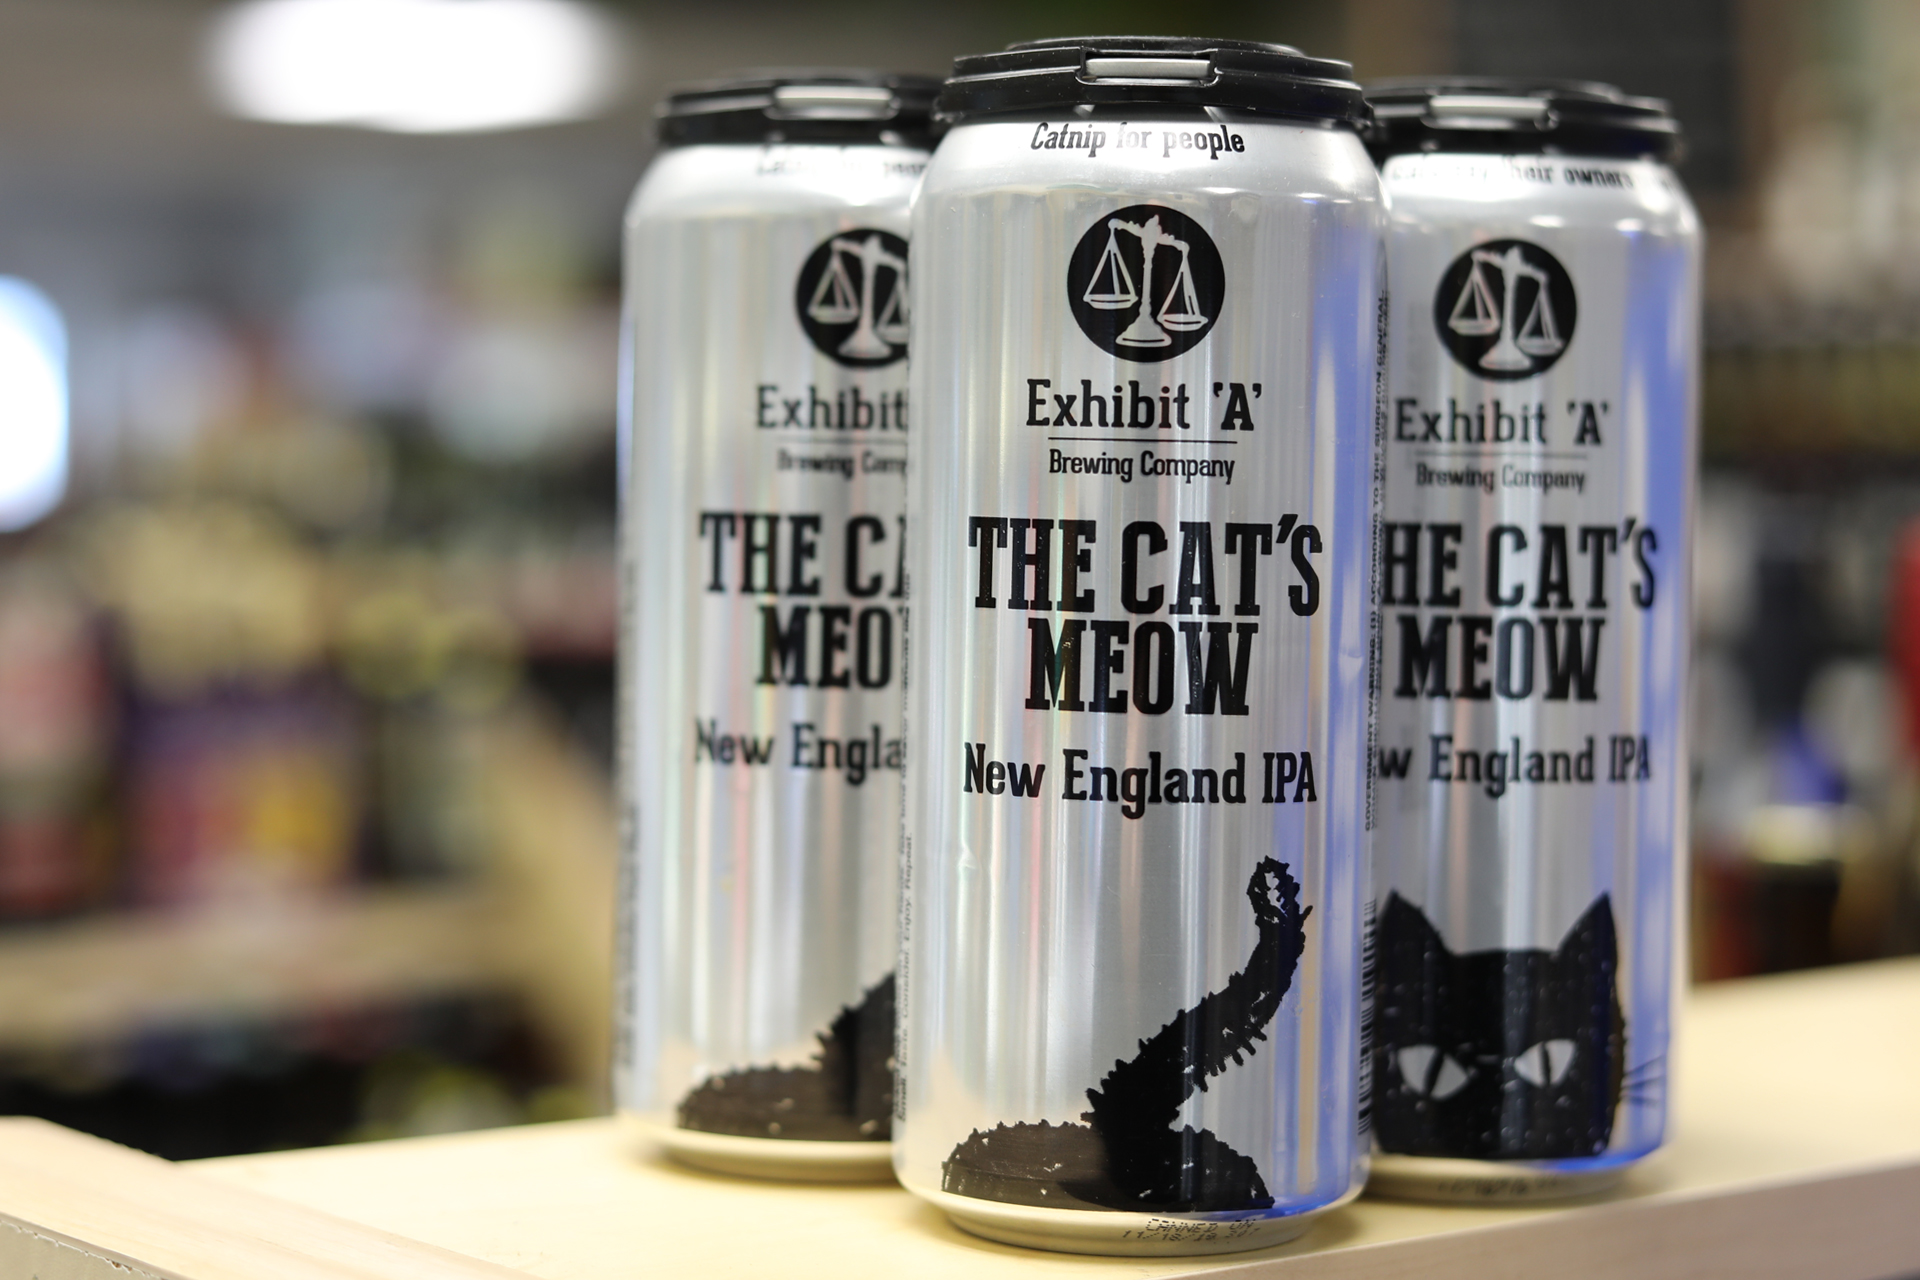 The-Cats-Meow-NE-IPA-3